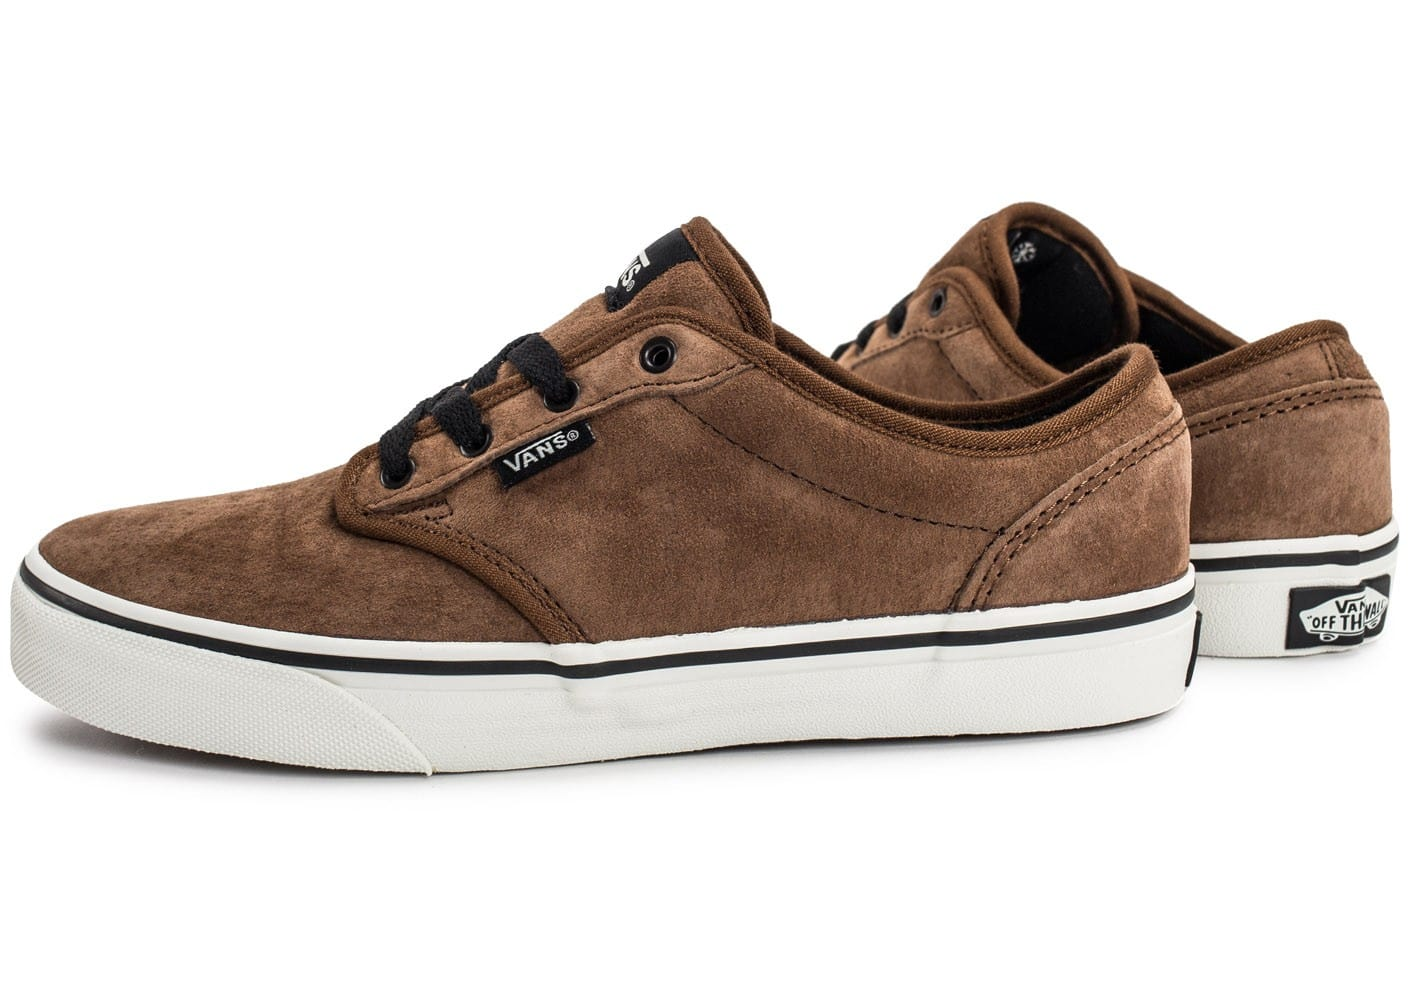 Suede Marron Atwood Enfant Mte Vans Chaussures Chausport byIY6f7gv